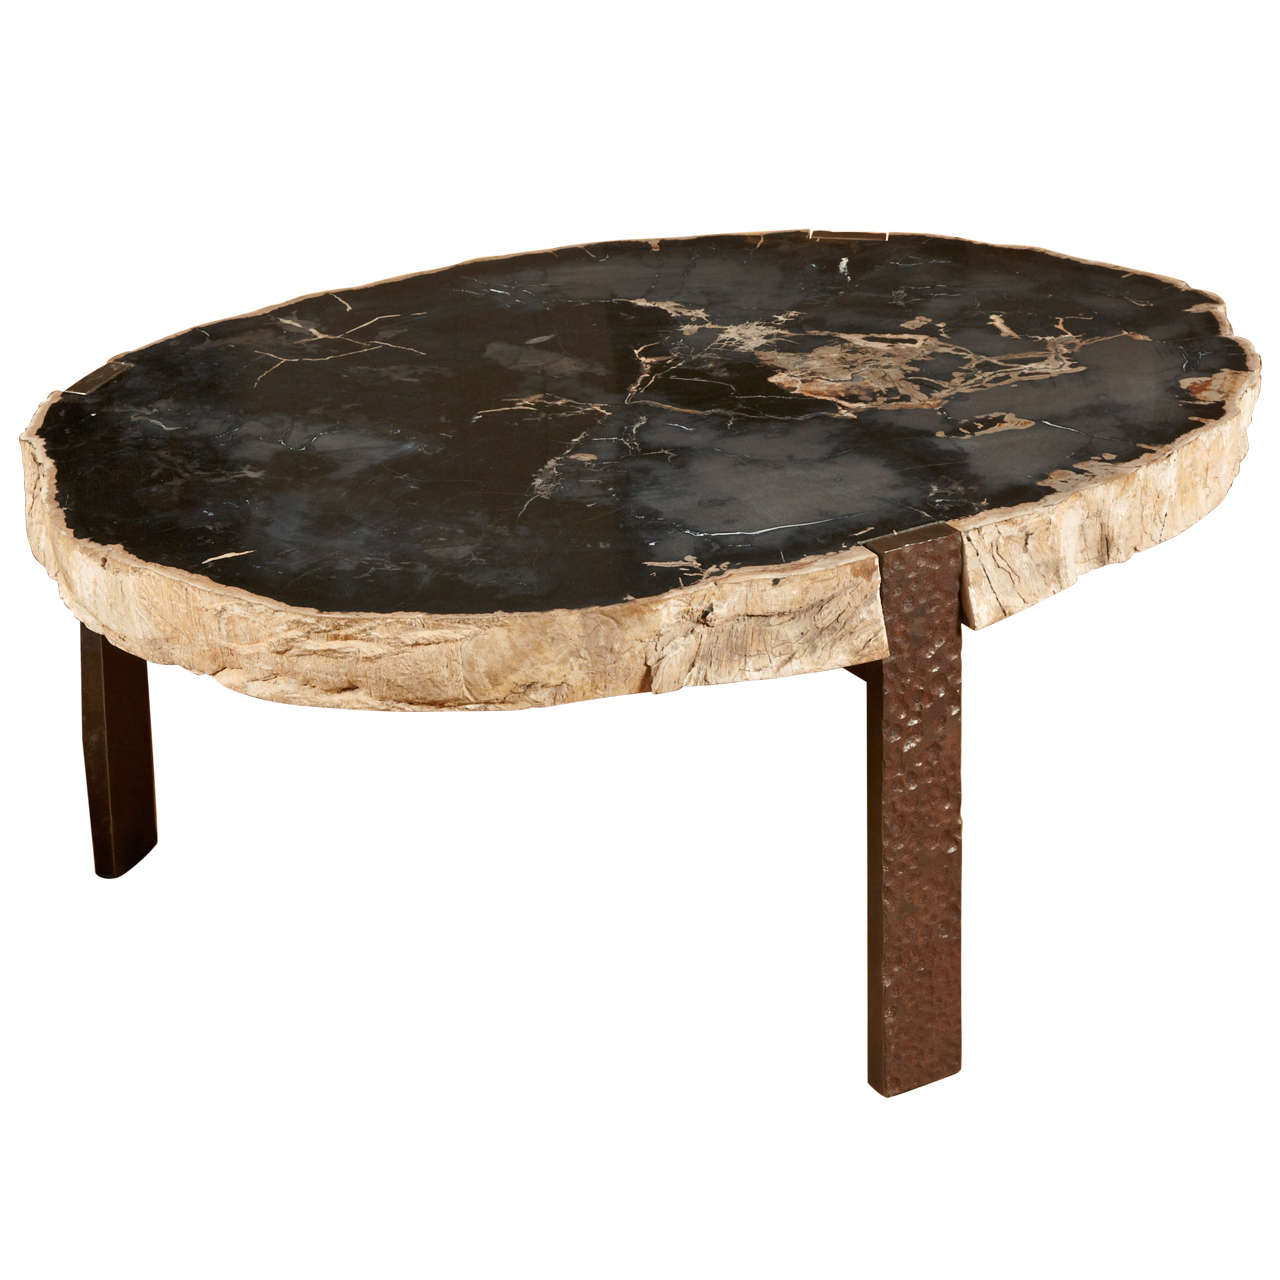 for Best wood for coffee table